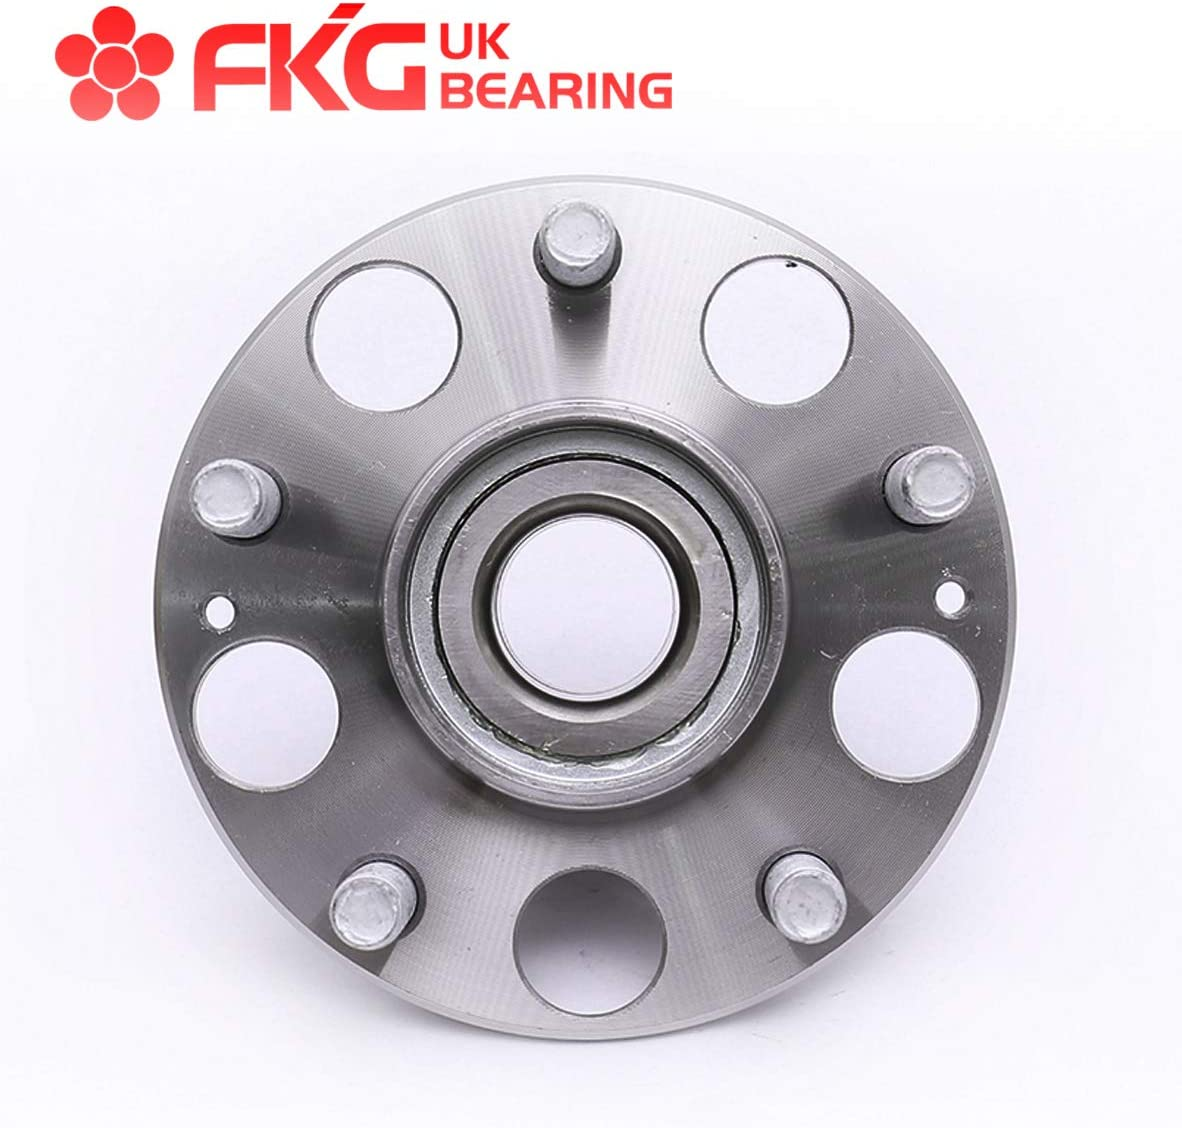 5 Lugs Set of 2 FKG 512188 Rear Wheel Bearing Hub Assembly for 2003-2007 Honda Accord 2004-2008 Acura TL